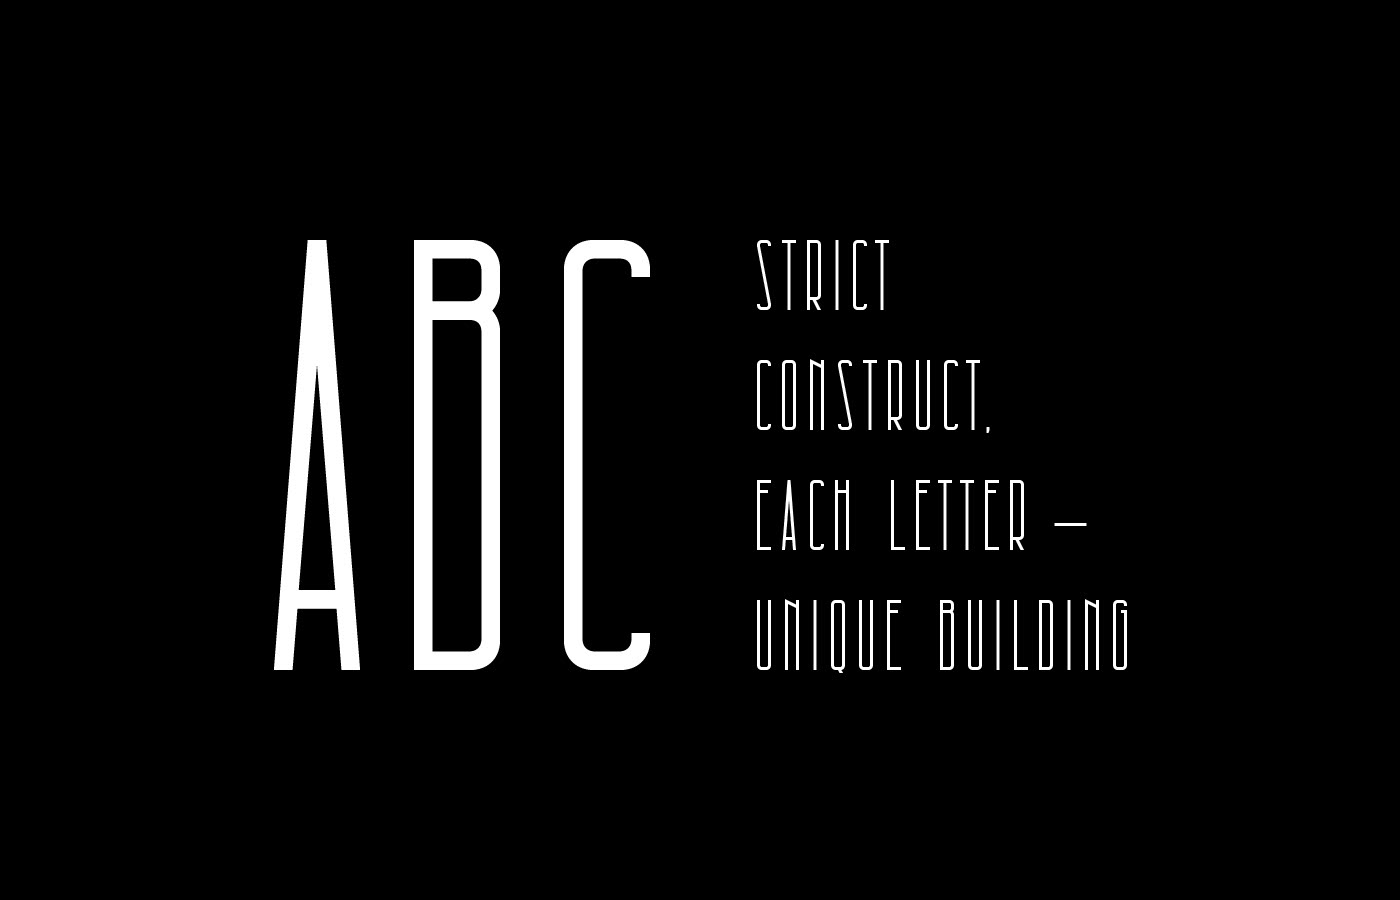 Architectural Free Font - decorative-display